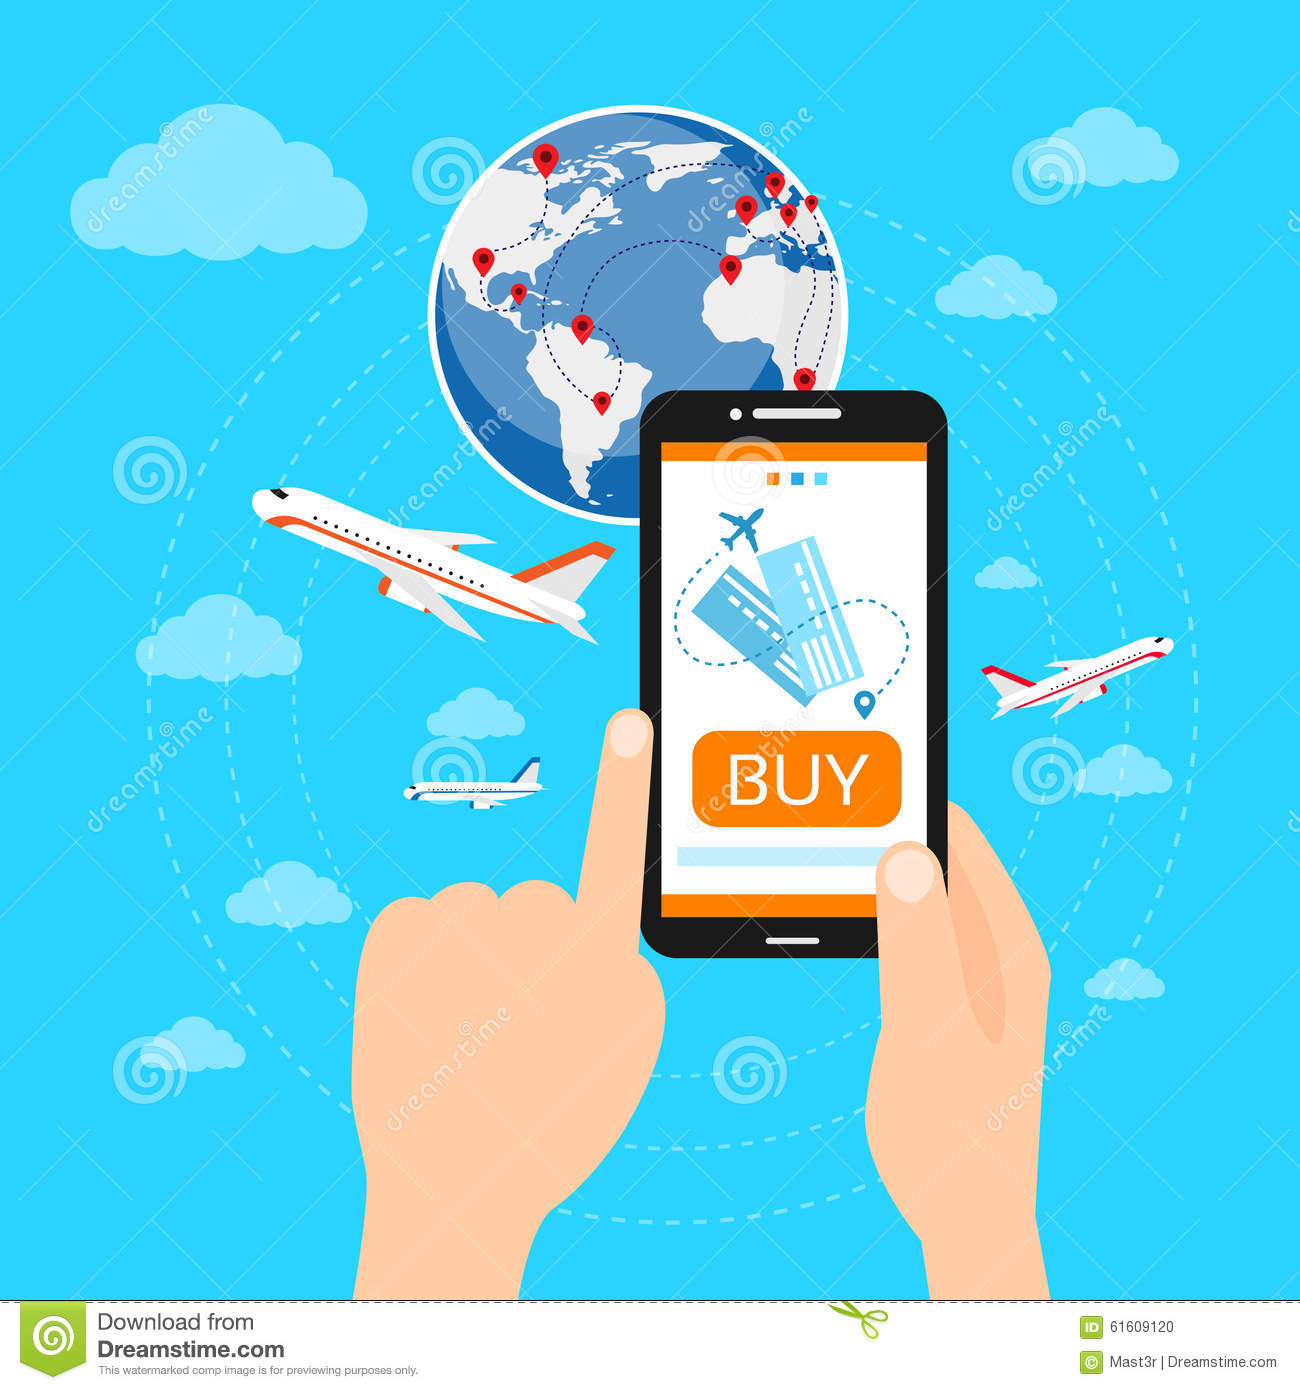 Buy ticket online smart phone application globe stock vector download comp gumiabroncs Choice Image